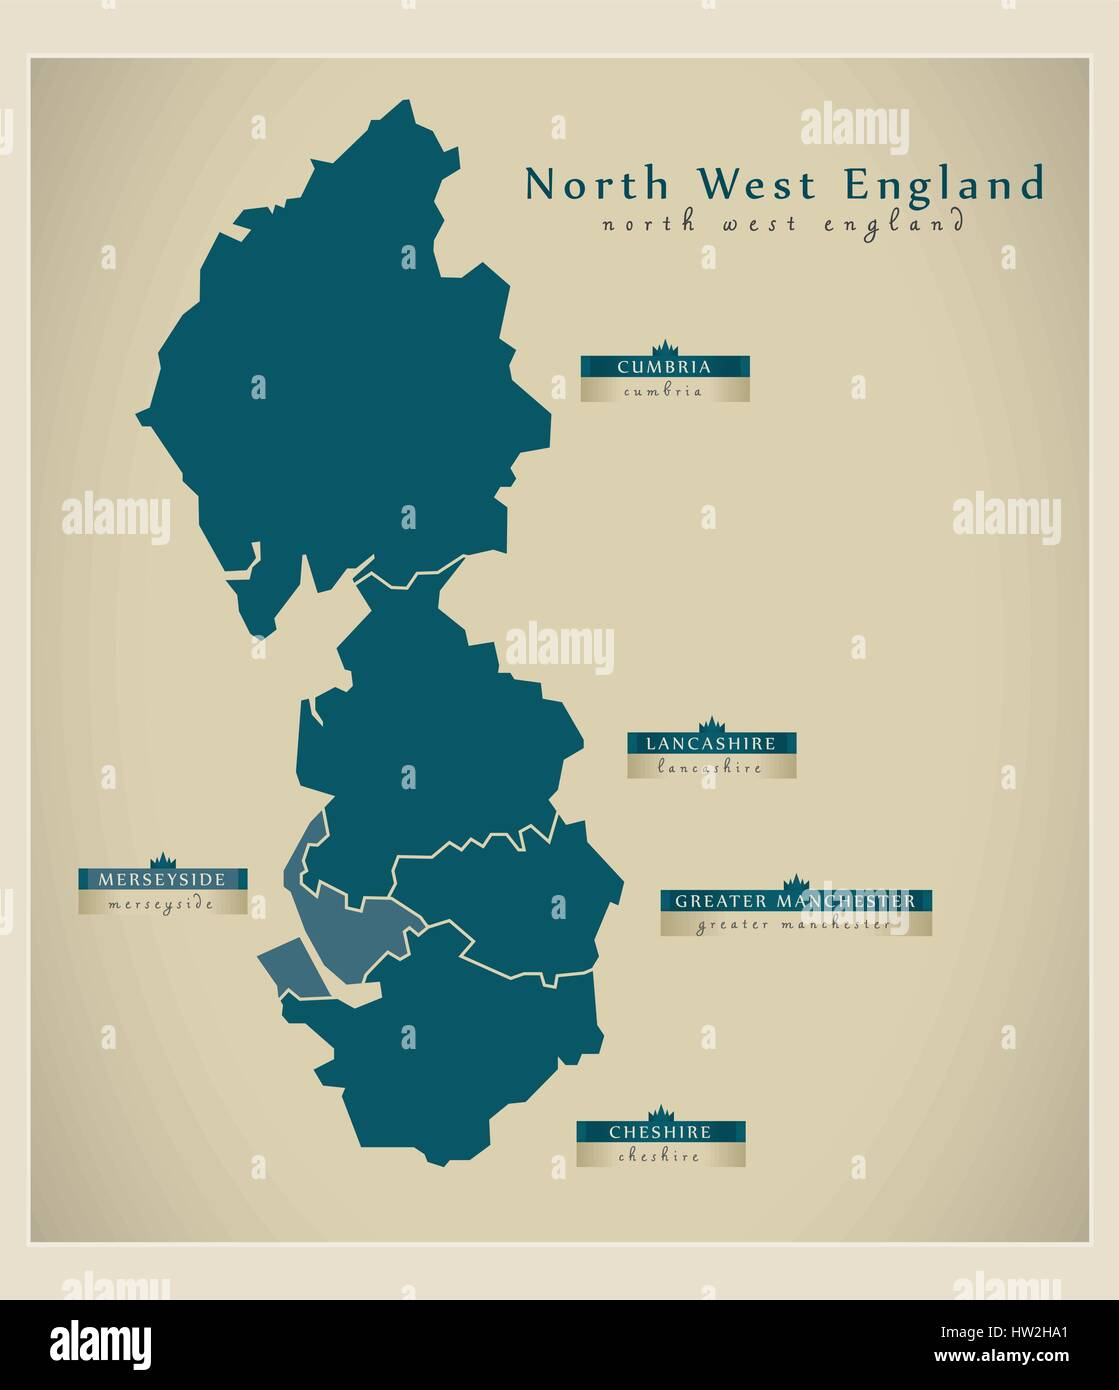 Modern Map - North West England Stock Vector Art ... on map of lake district, map of england regions, map of cumbria england, west midlands england, map of cheshire, map of manchester, map of uk, map of northern england, map of east of england, map of yorkshire, map of north east, map of england counties, east midlands, map of great britain, map of england with towns, map of liverpool england, east of england, map of isle of wight england, republic of ireland, map of staffordshire, st helens, map of north mid wales, south west england, map of ireland & northern ireland, map of lancashire england,